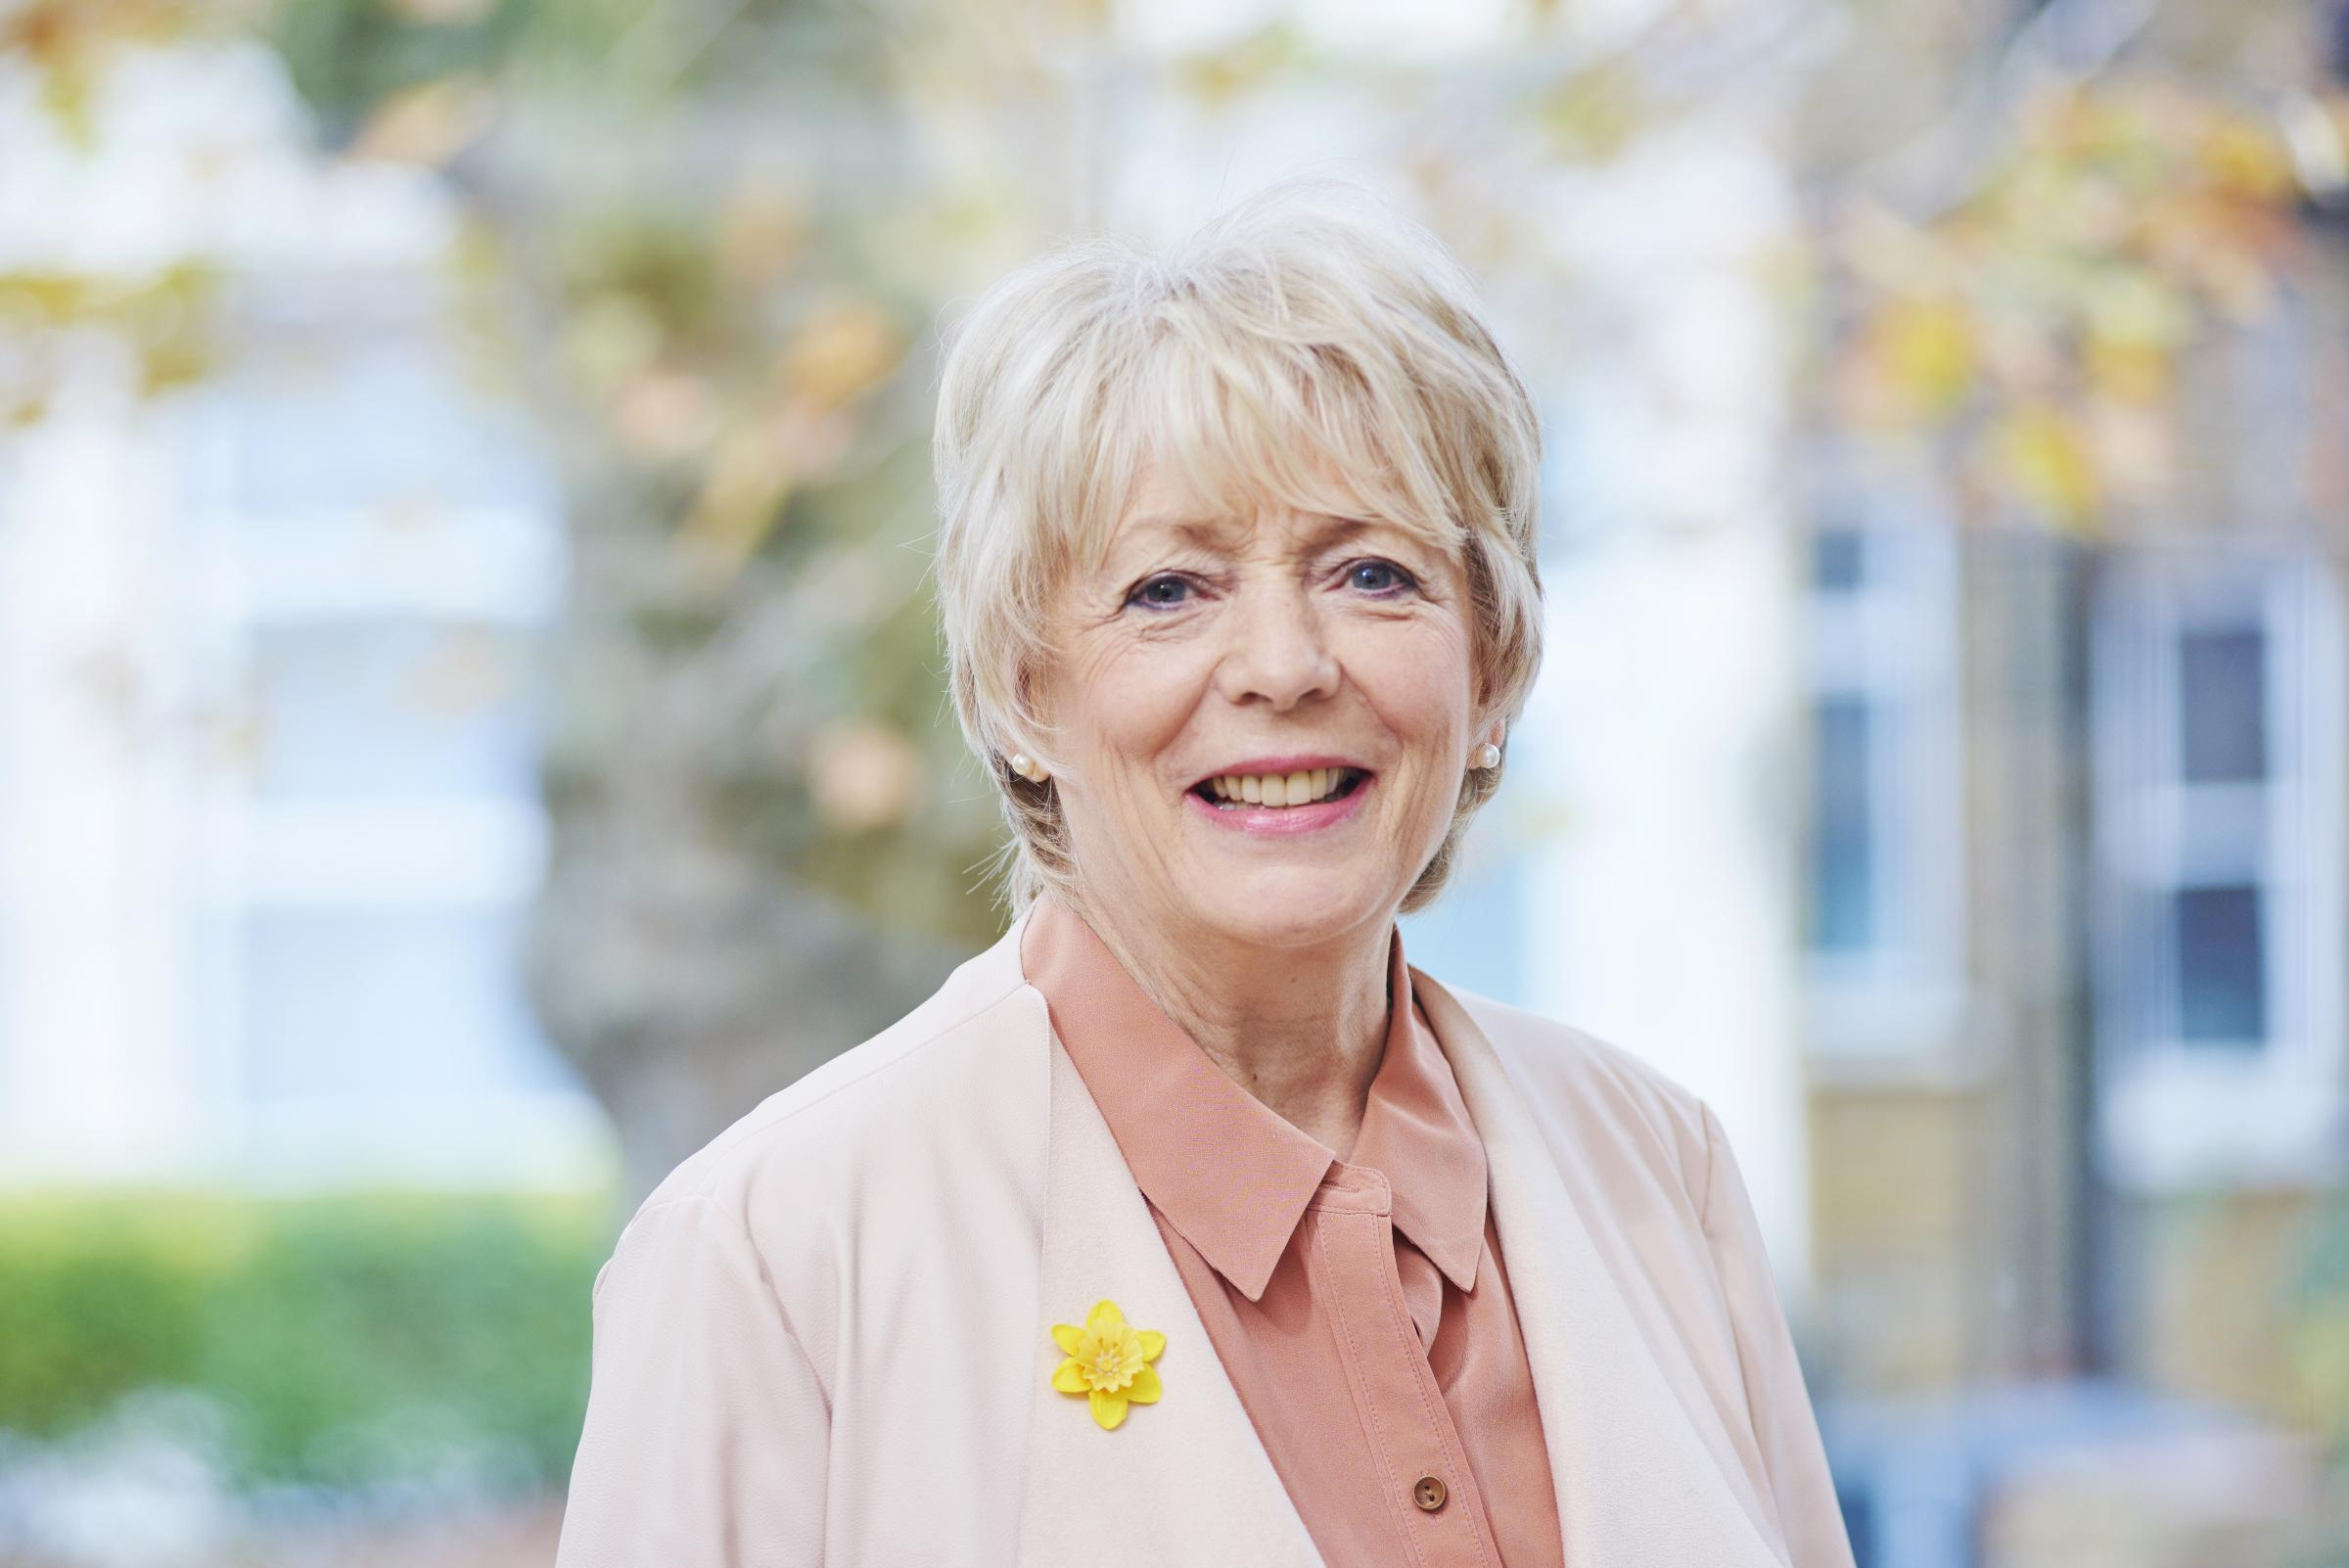 Alison Steadman, who is supporting the Great Daffodil Appeal for Marie Curie